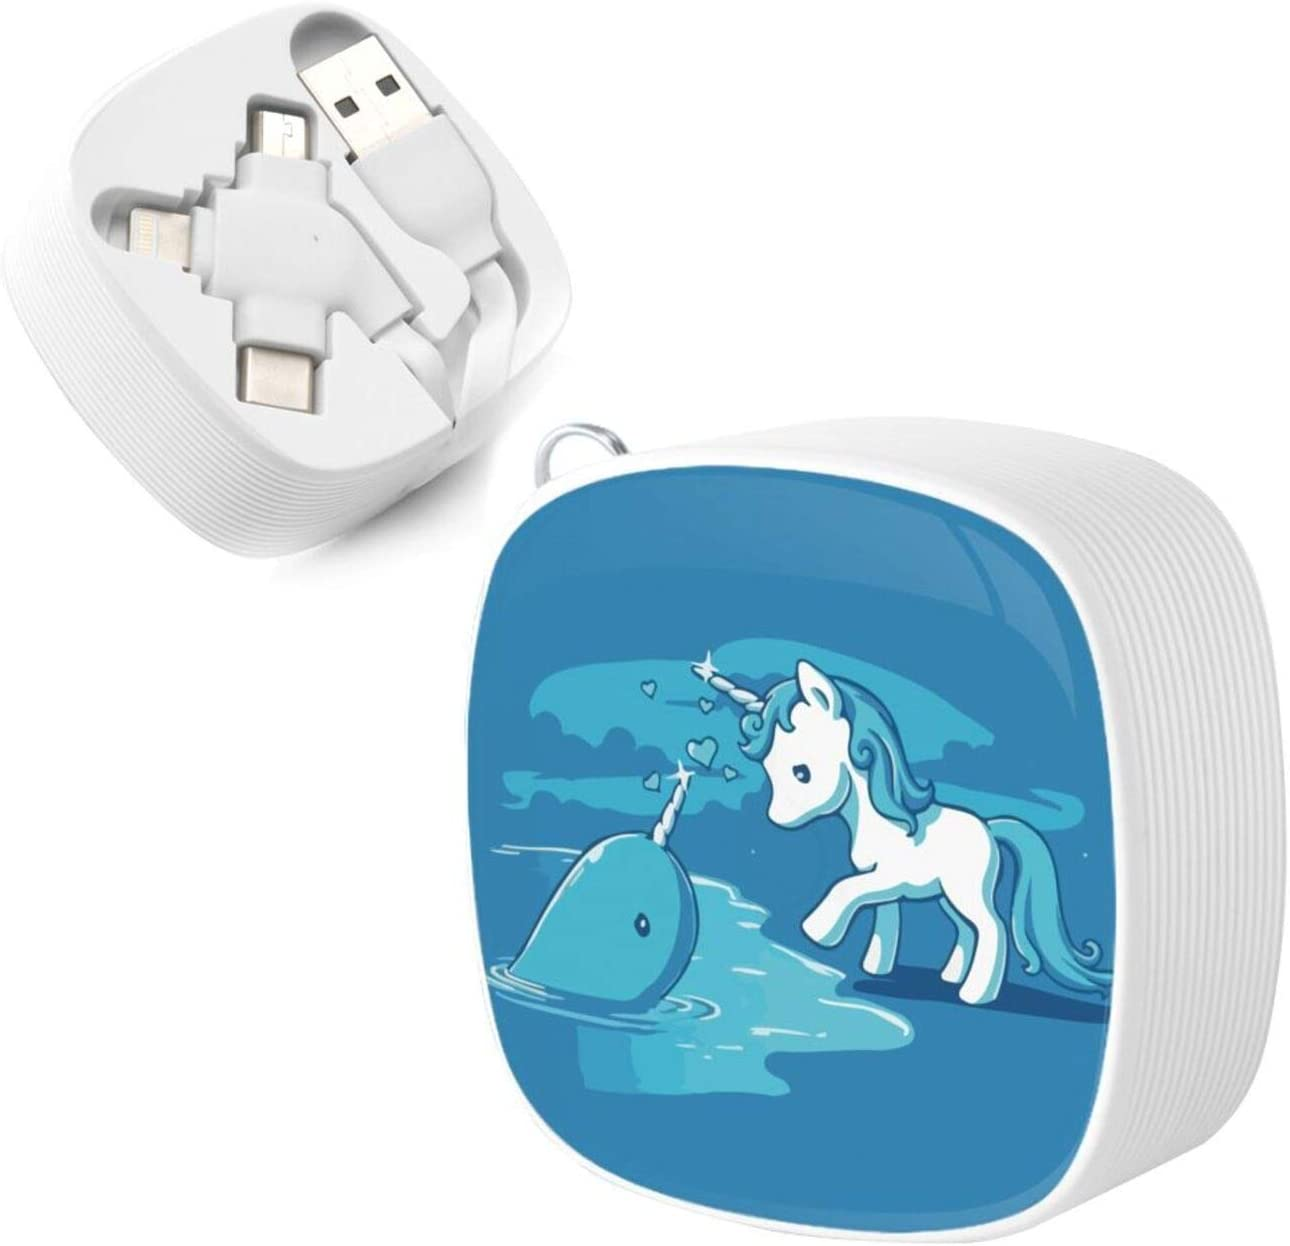 Narwal Date with Unicornthe Square Three-in-One USB Cable is A Universal Interface Charging Cable Suitable for Various Mobile Phones and Tablets